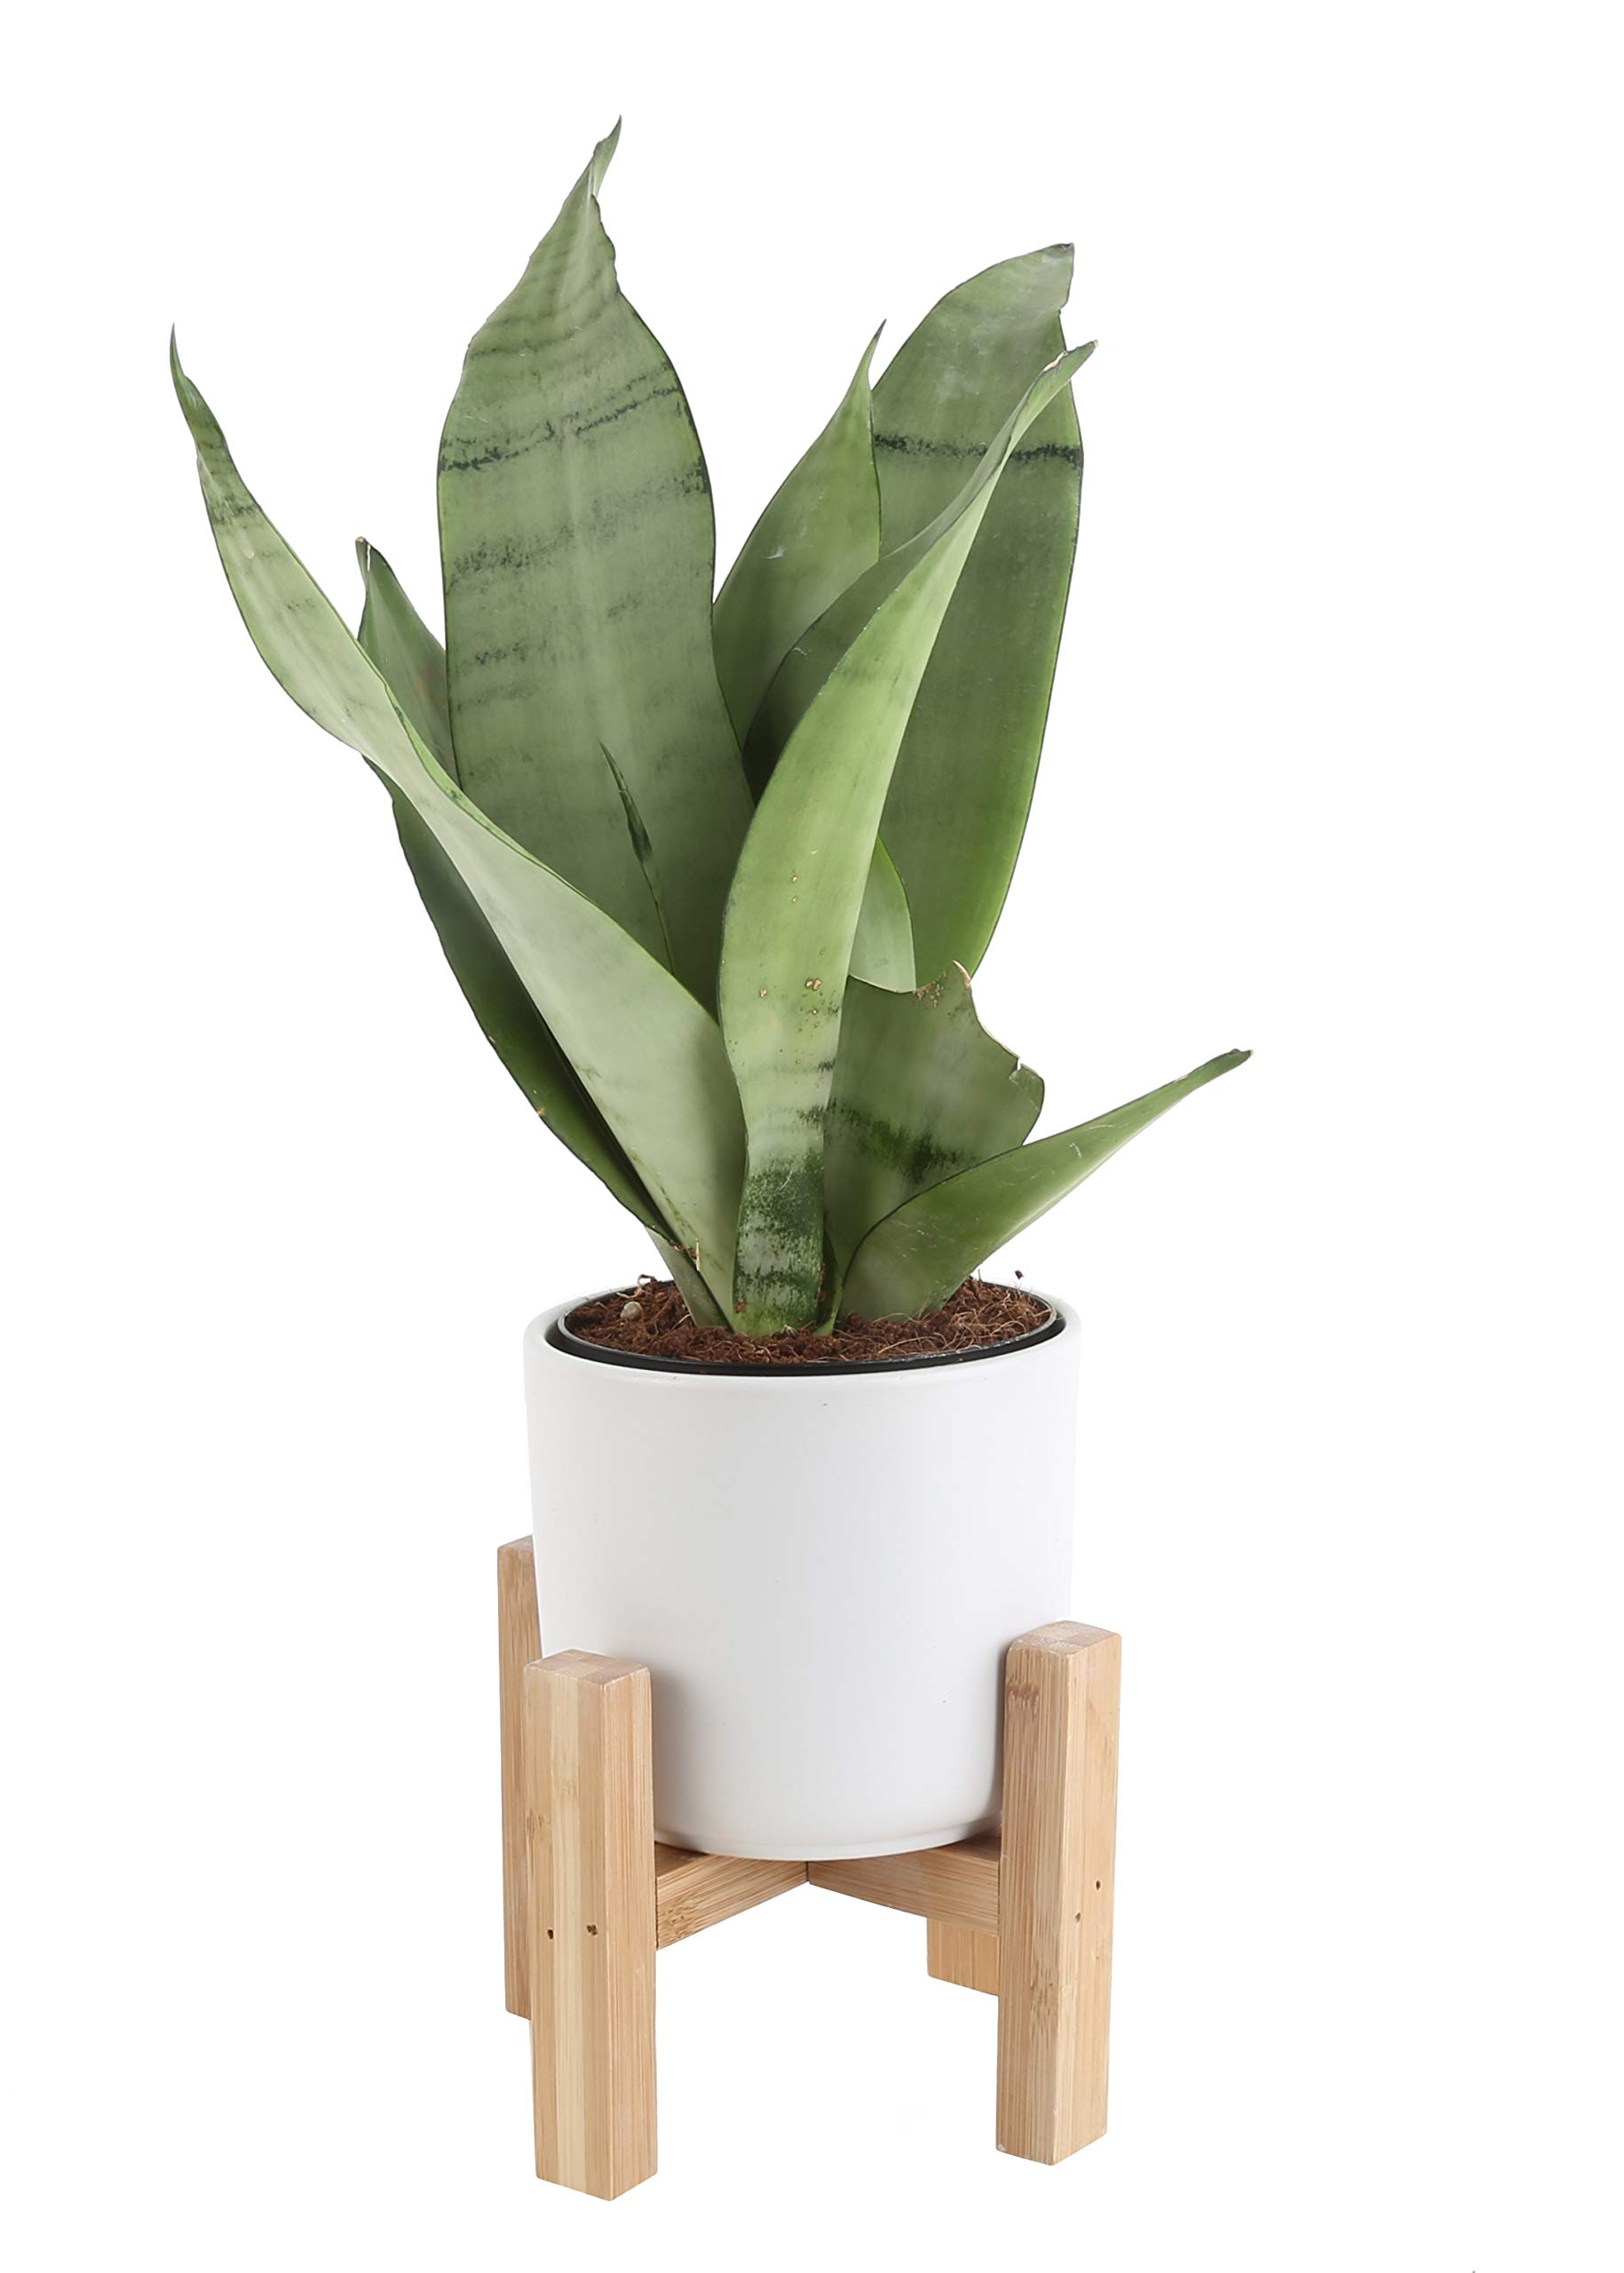 Costa Farms Snake Plant, Sansevieria, with 4.25-Inch Wide Mid-Century Modern Planter and Plant Stand Set, White, Fits on Shelves/Tabletops